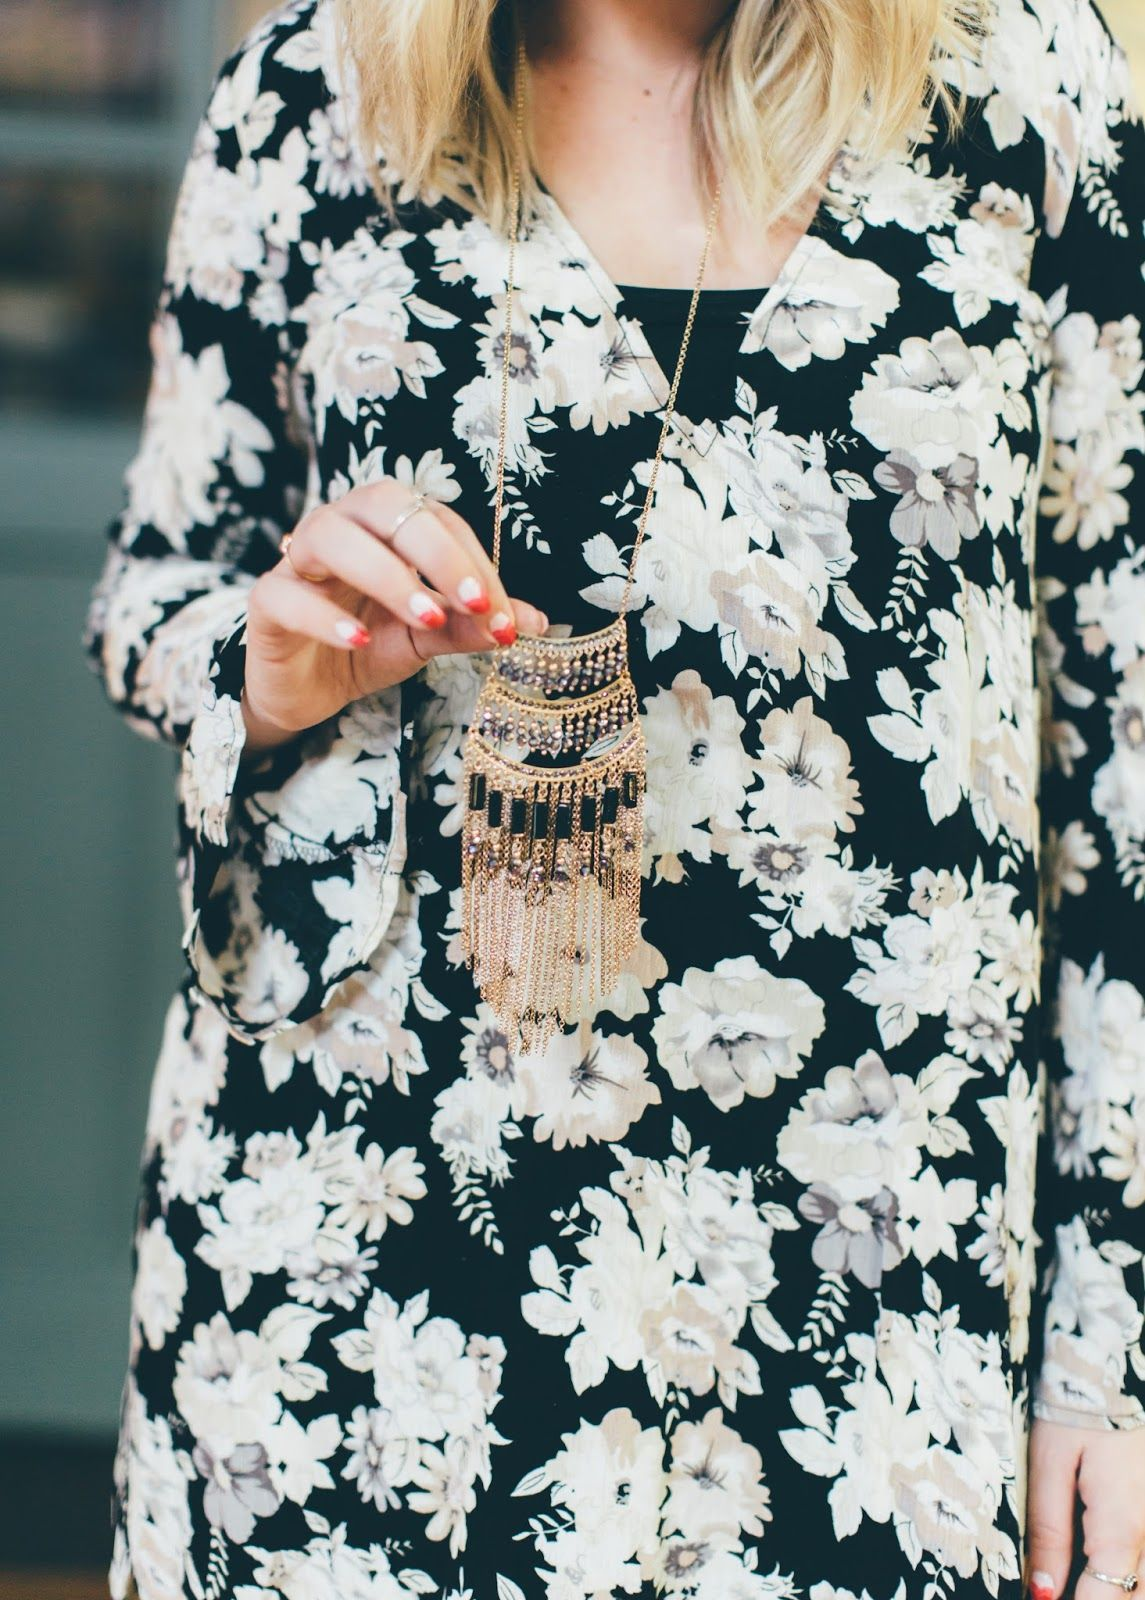 Goldies tunic style u wiwt link up postpartum outfits floral